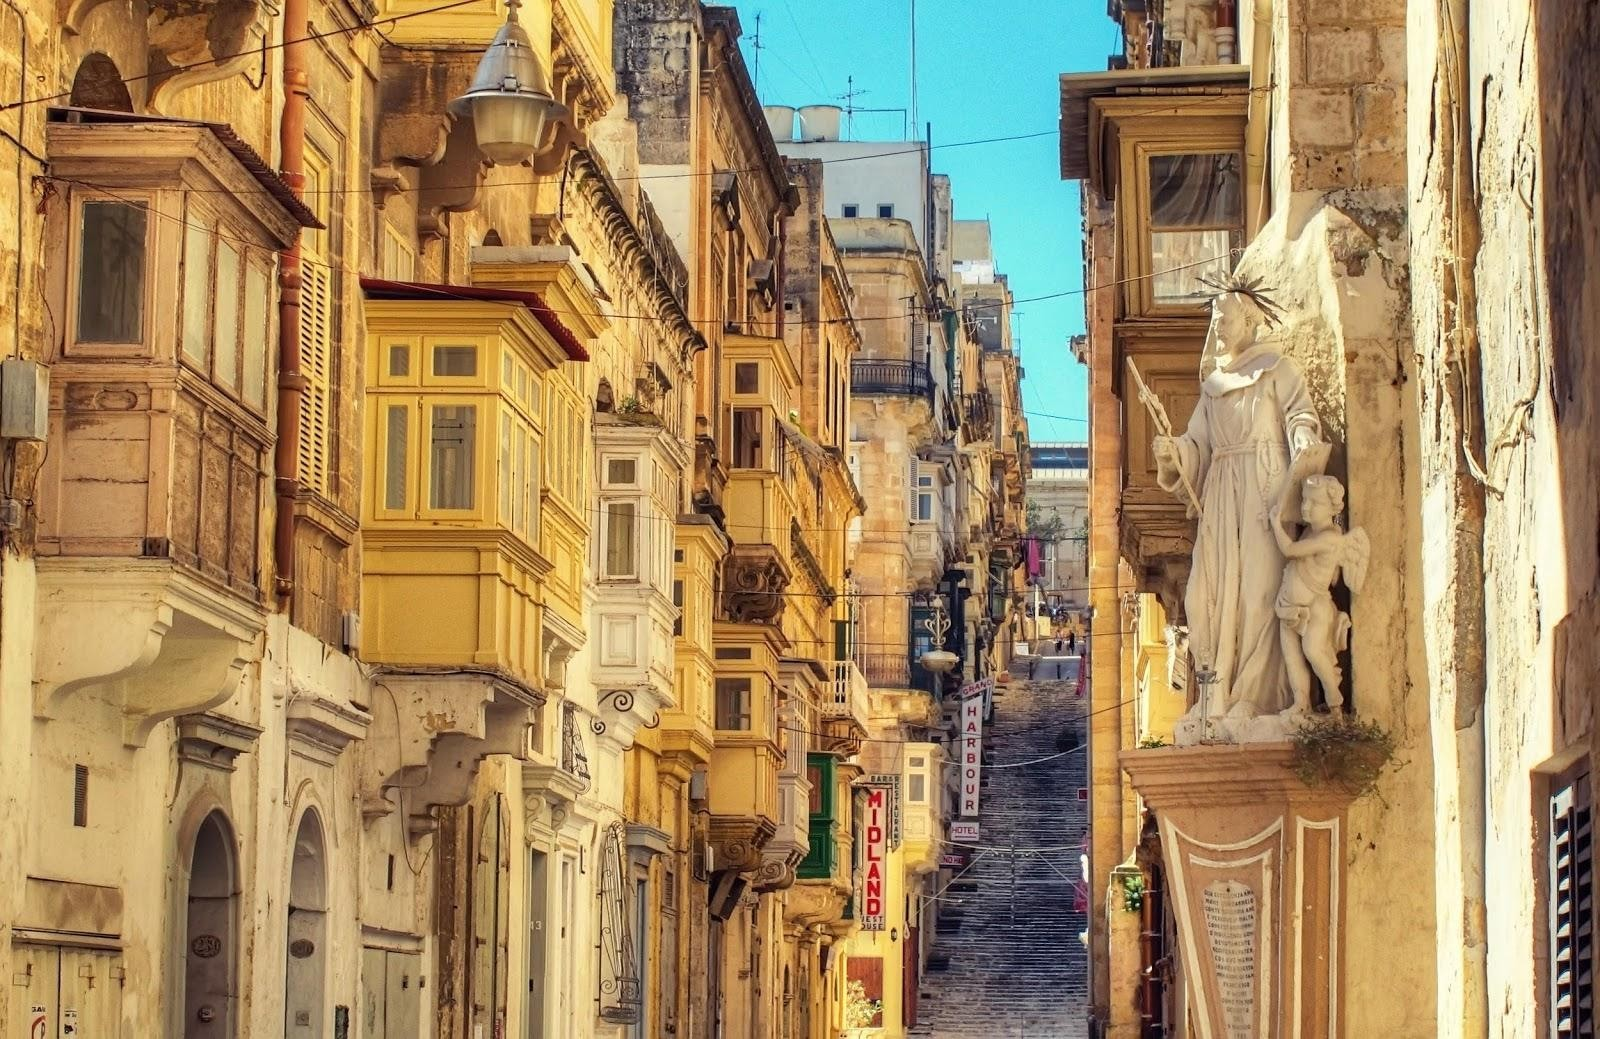 , United States Tour Operators Association (USTOA) prepares for Spring 2020 Out-of-country board meeting in Malta, For Immediate Release | Official News Wire for the Travel Industry, For Immediate Release | Official News Wire for the Travel Industry